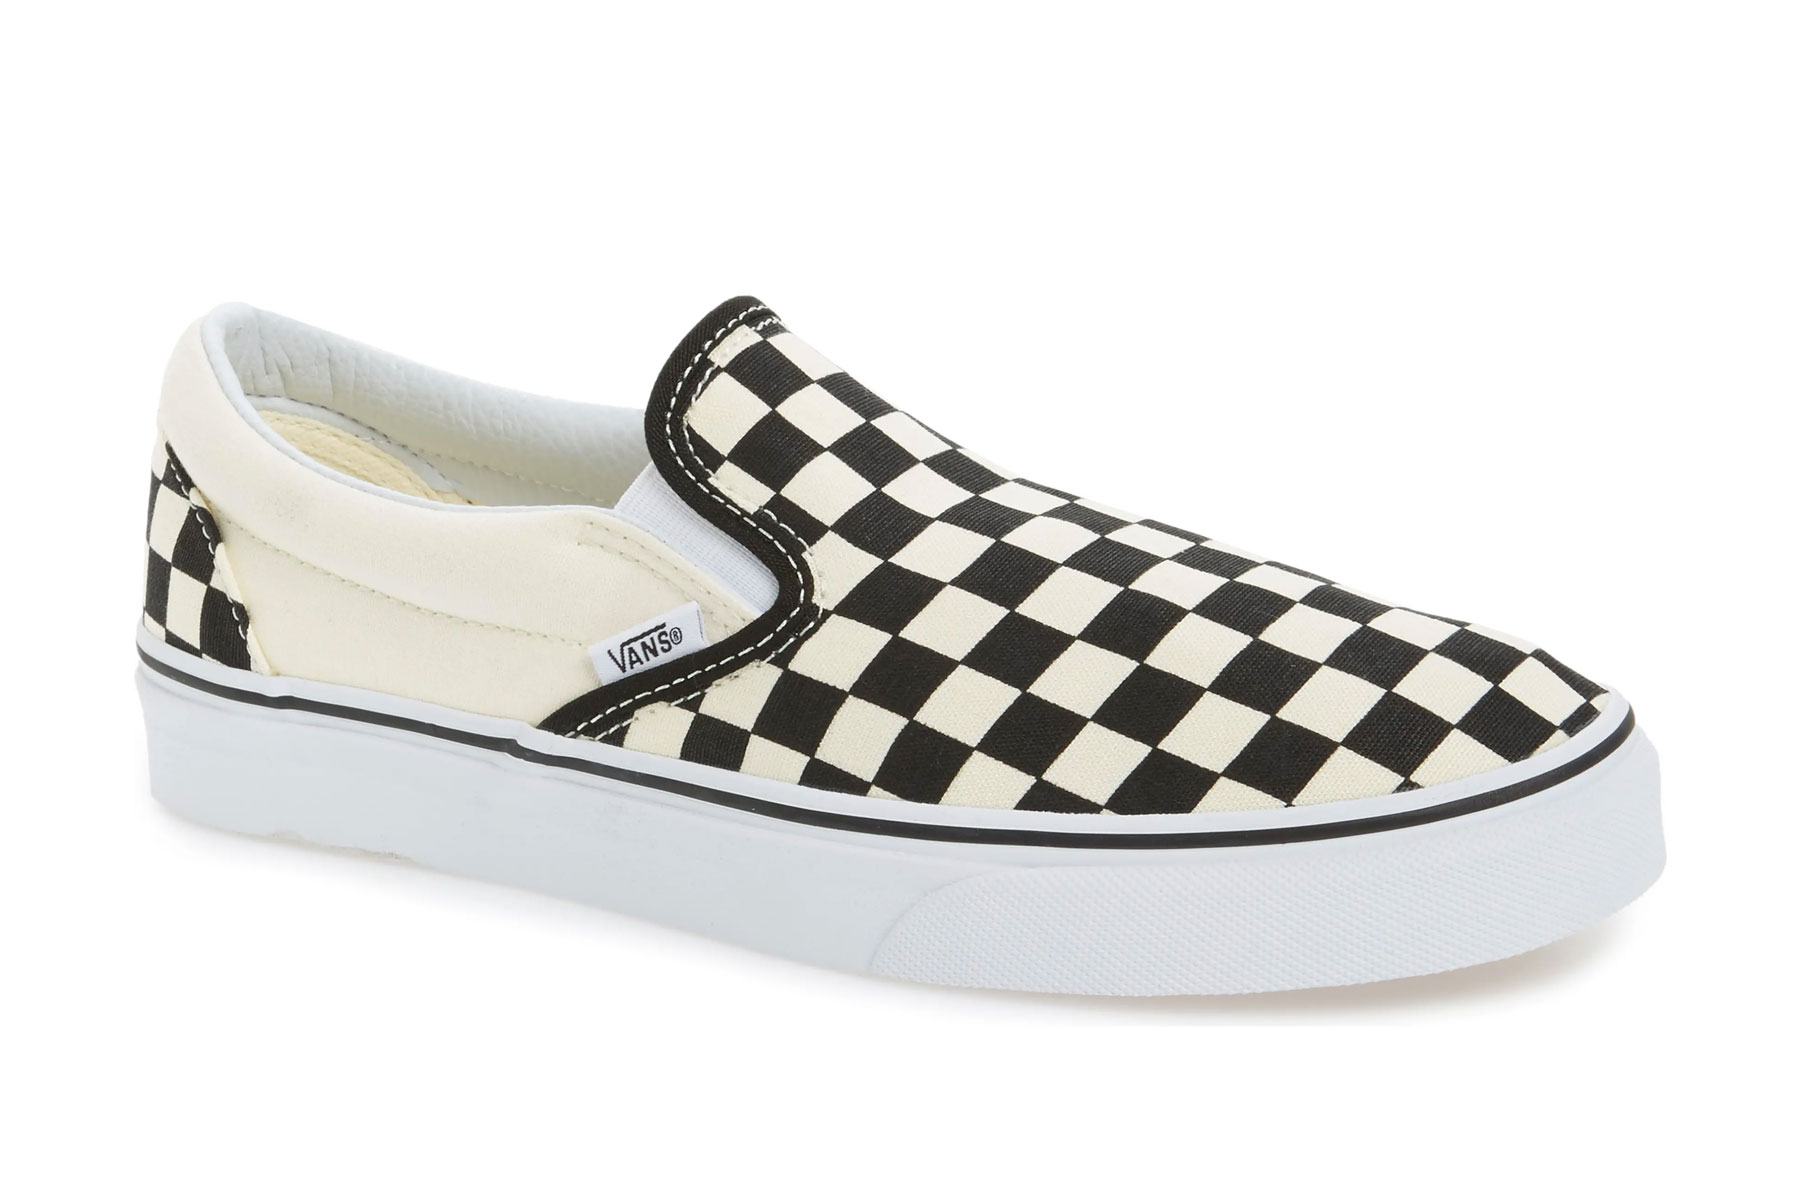 Checkered slip on Vans sneakers